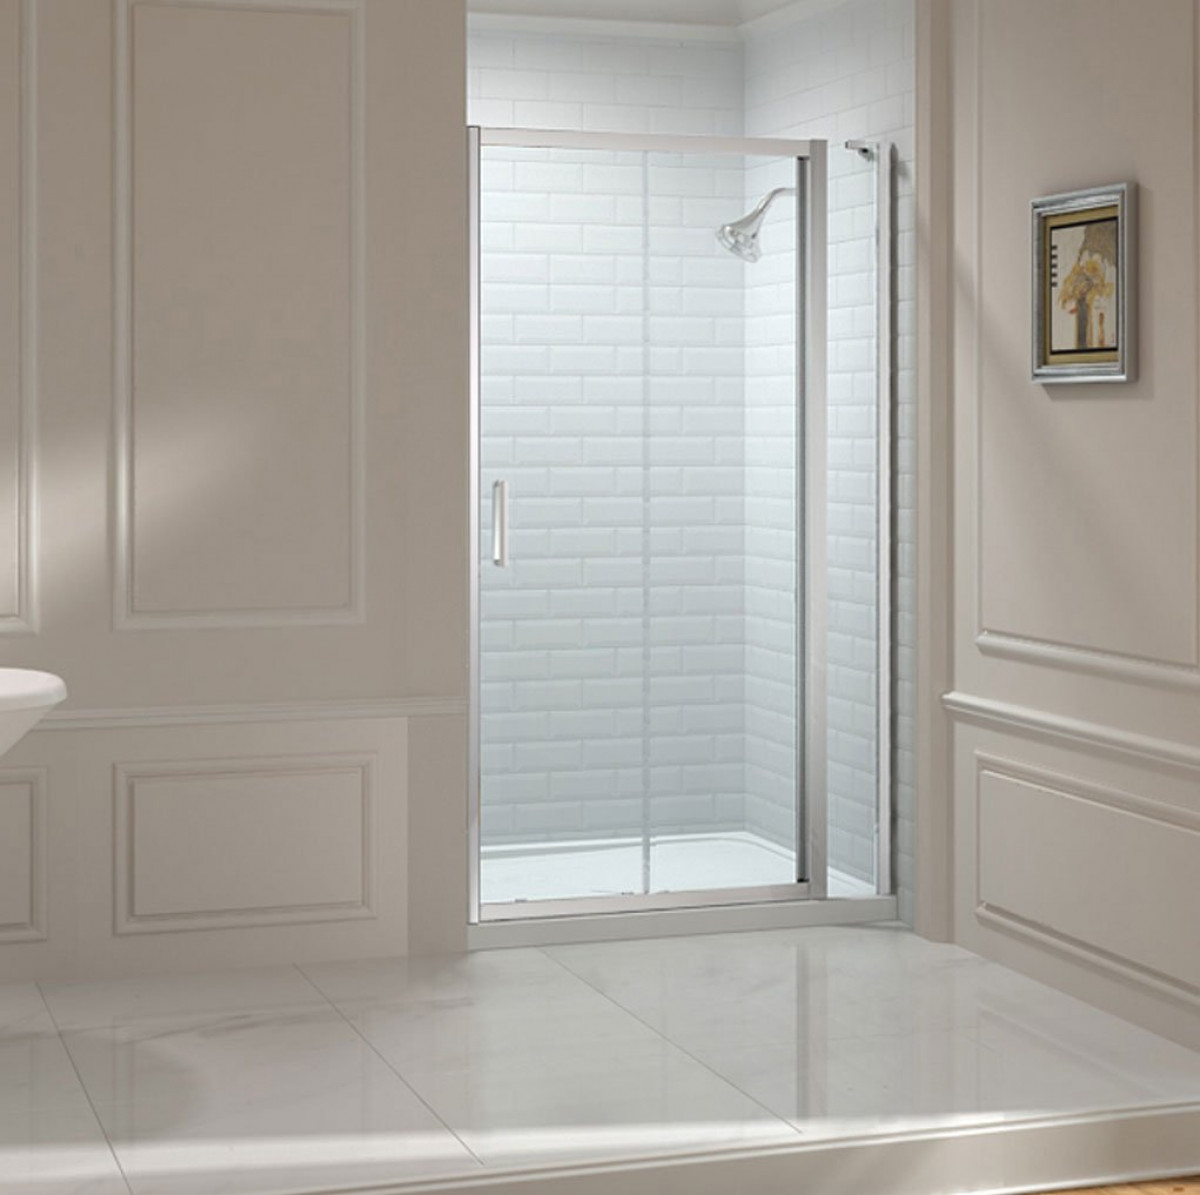 Merlyn 8 series 1300mm sliding shower door and inline panel for 1300 sliding shower door